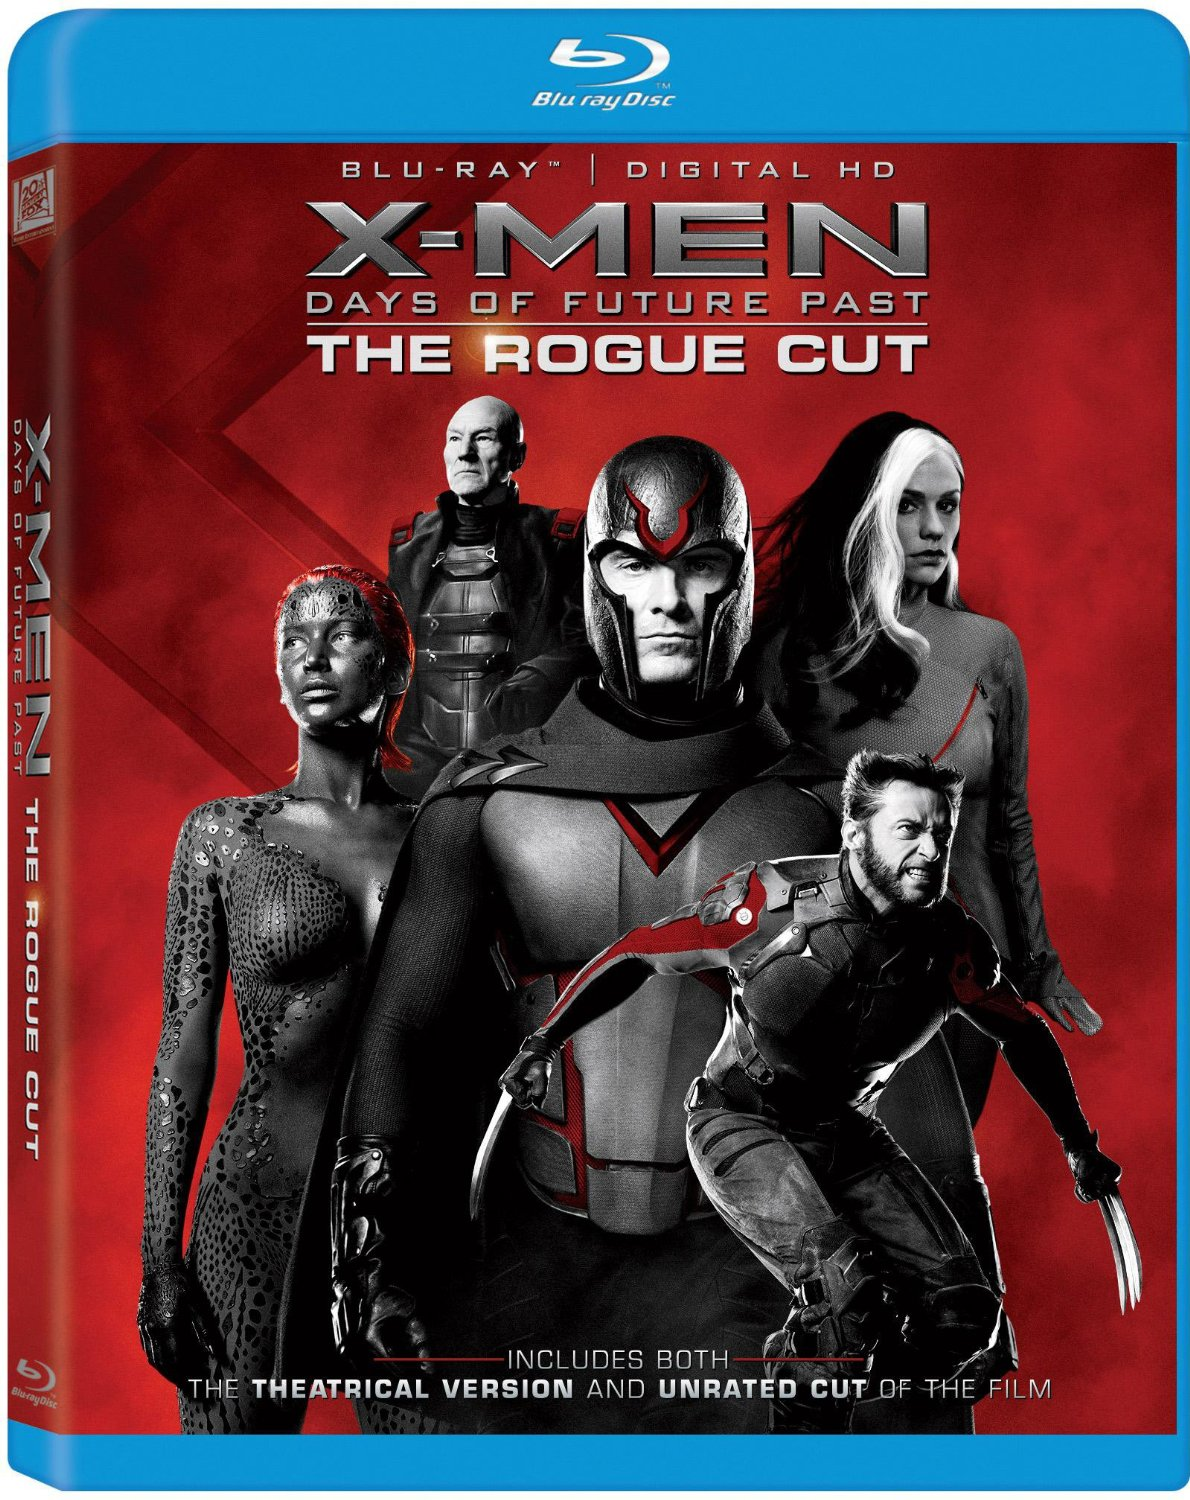 X Men Days Of Future Past: Rogue Cut review